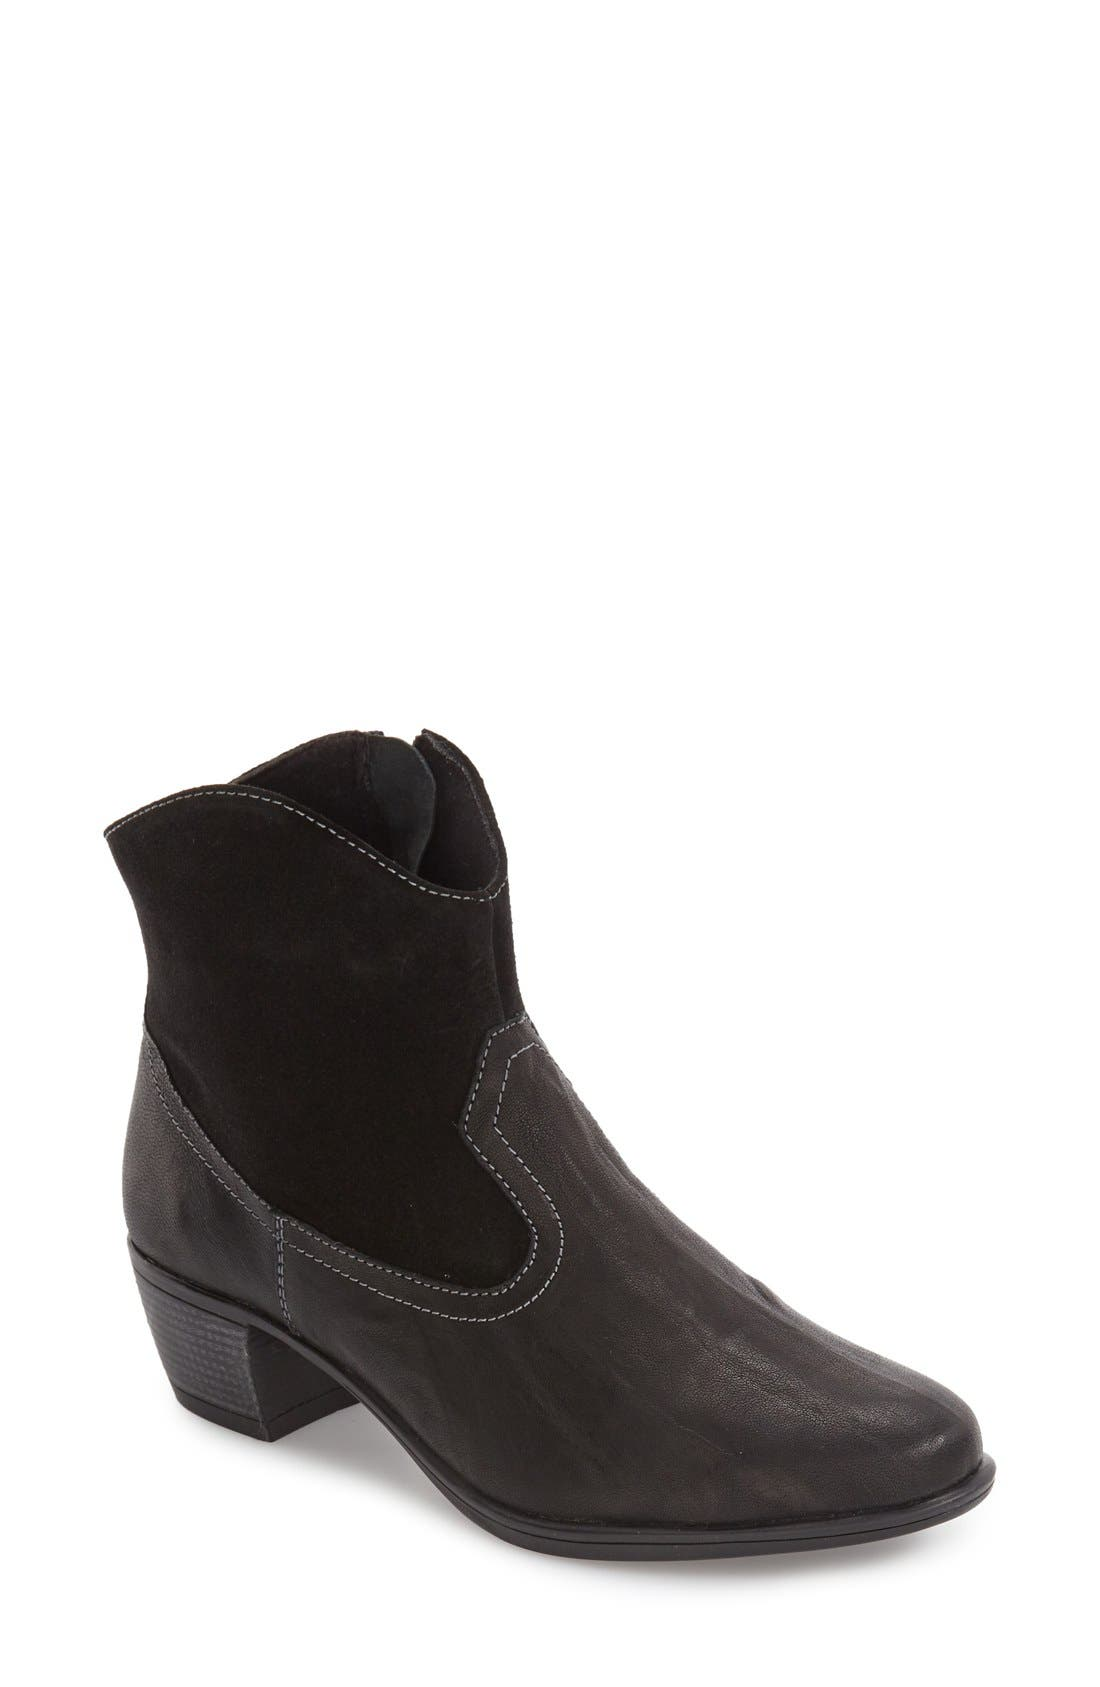 Laramie Bootie,                             Main thumbnail 1, color,                             BLACK LEATHER